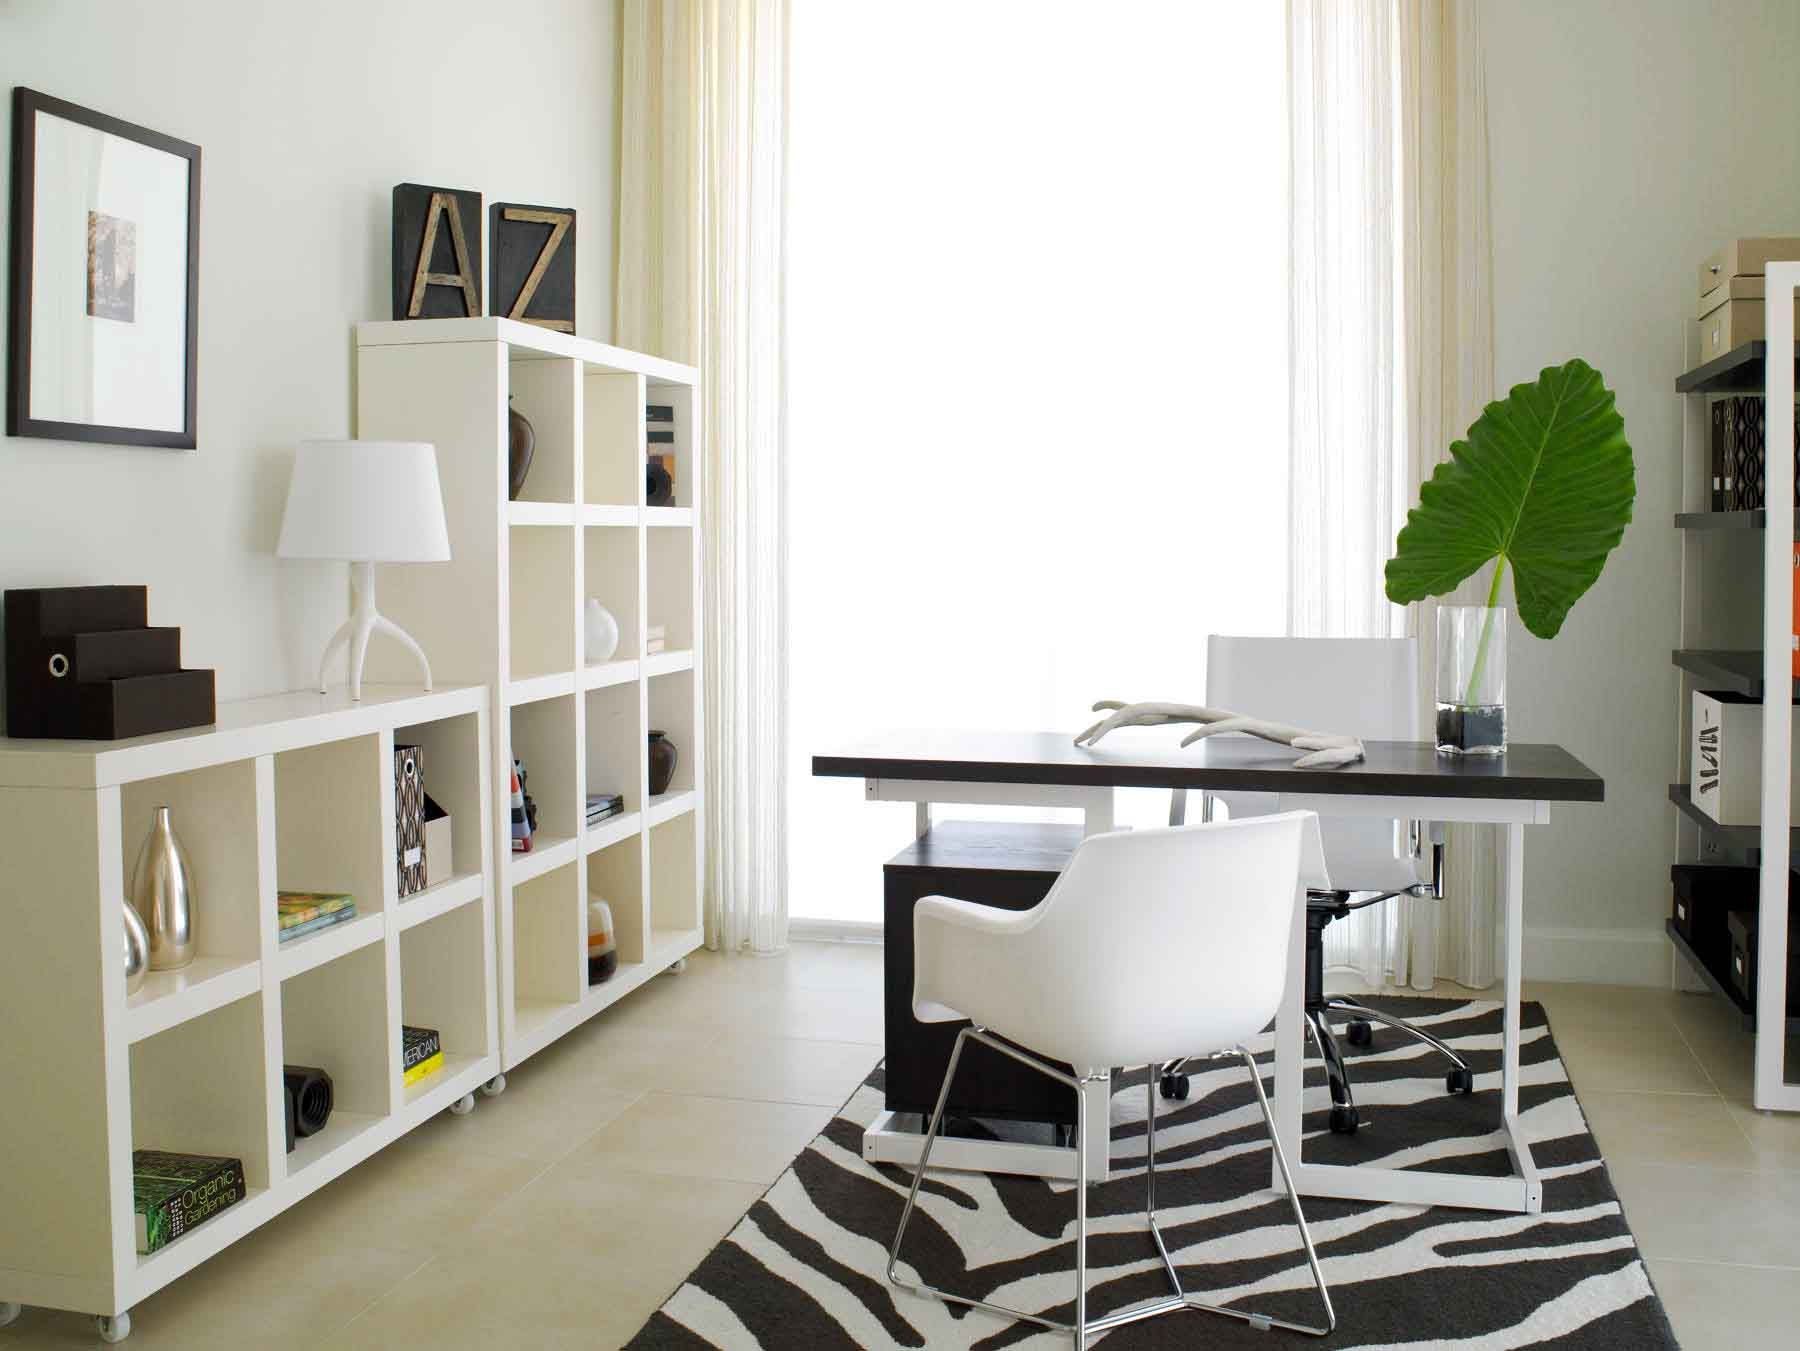 ikea office decorating ideas. 24 Minimalist Home Office Design Ideas For A Trendy Working Space Ikea Decorating S